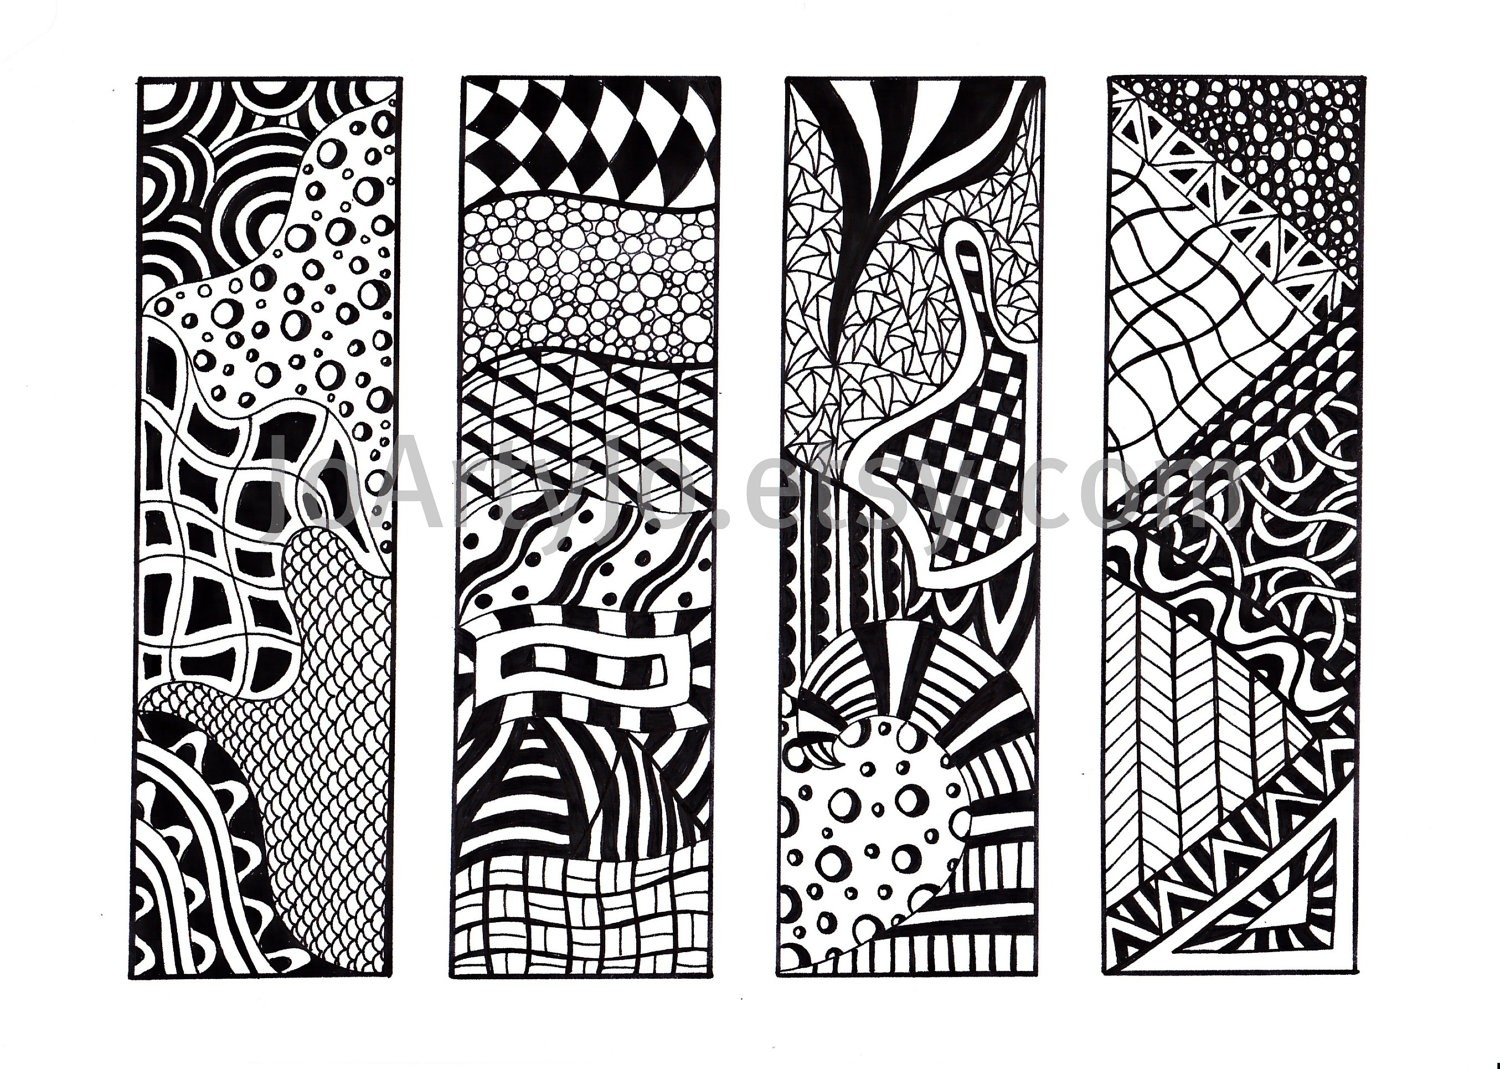 Zentangle Bookmarks, Printable Bookmarks, Black And White | Fotofuze intended for Bookmark Designs To Print Black And White 25873